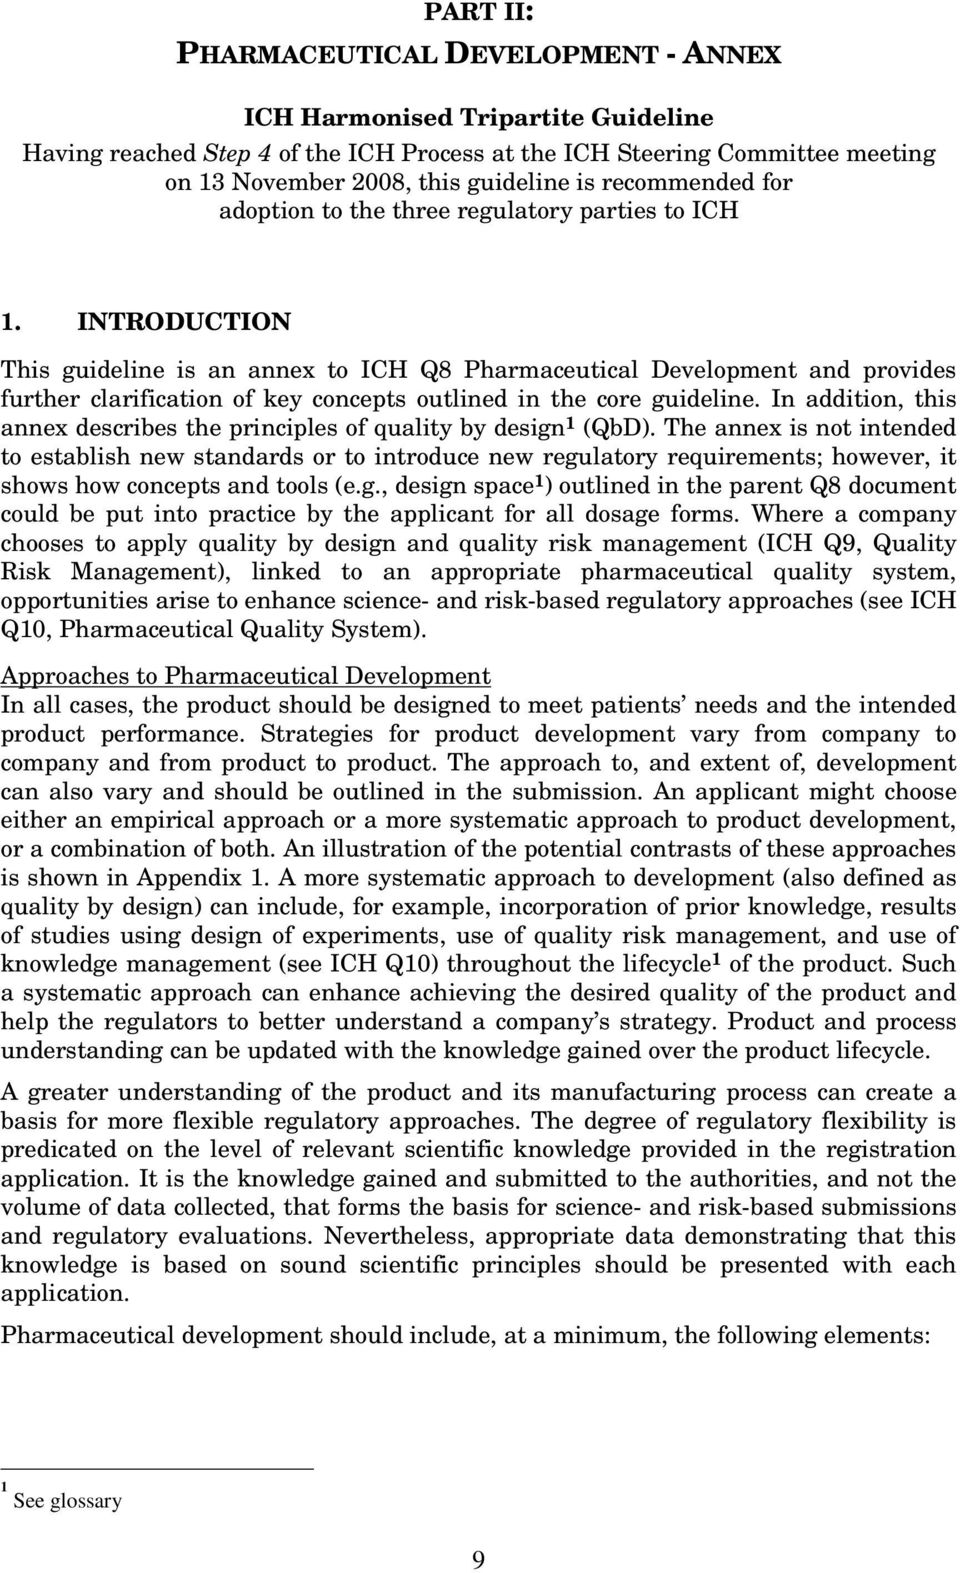 INTRODUCTION This guideline is an annex to ICH Q8 Pharmaceutical Development and provides further clarification of key concepts outlined in the core guideline.